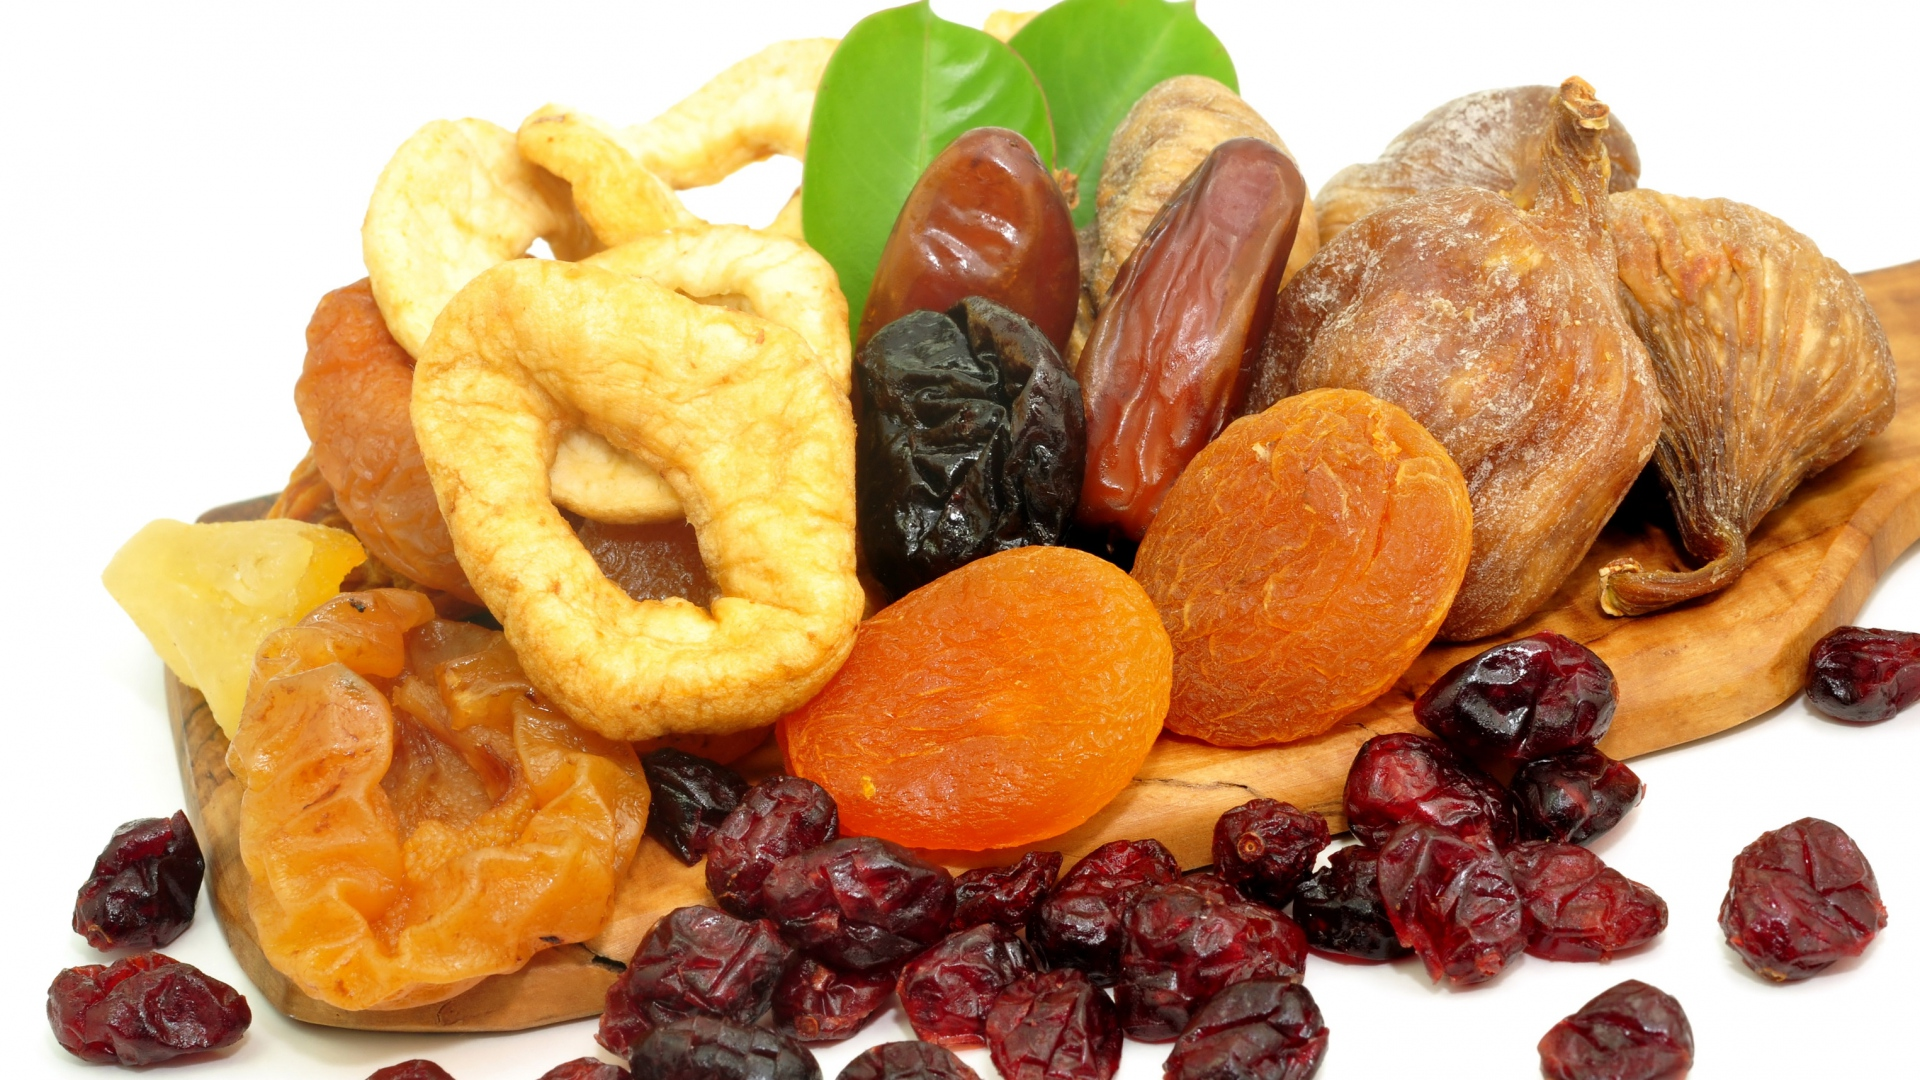 dried fruit desktop wallpaper 62931